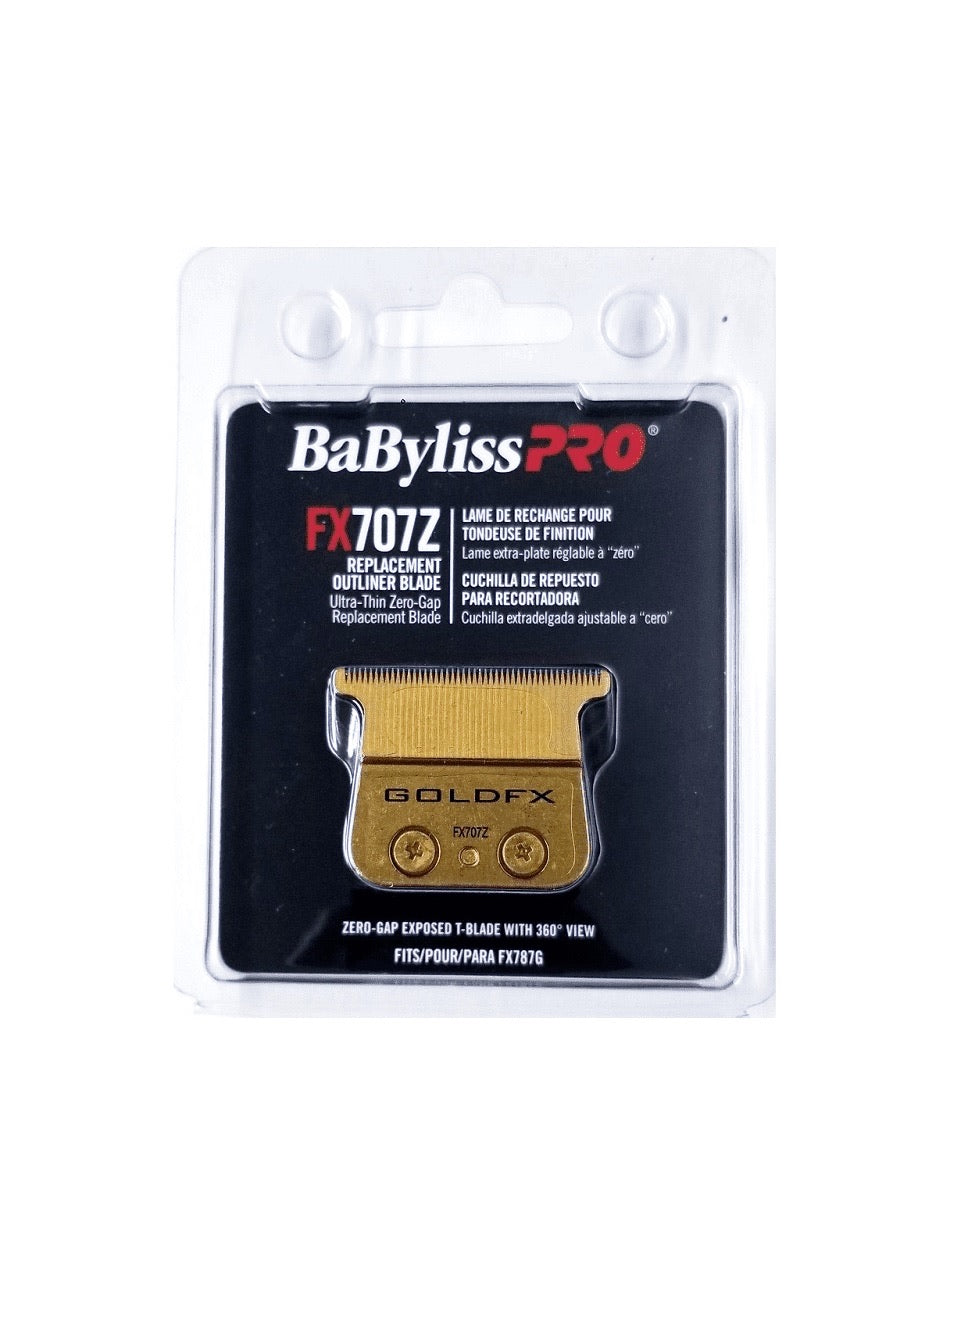 BaBylissPRO FX707Z Ultra-Thin Zero-Gap Replacement Outliner Blade